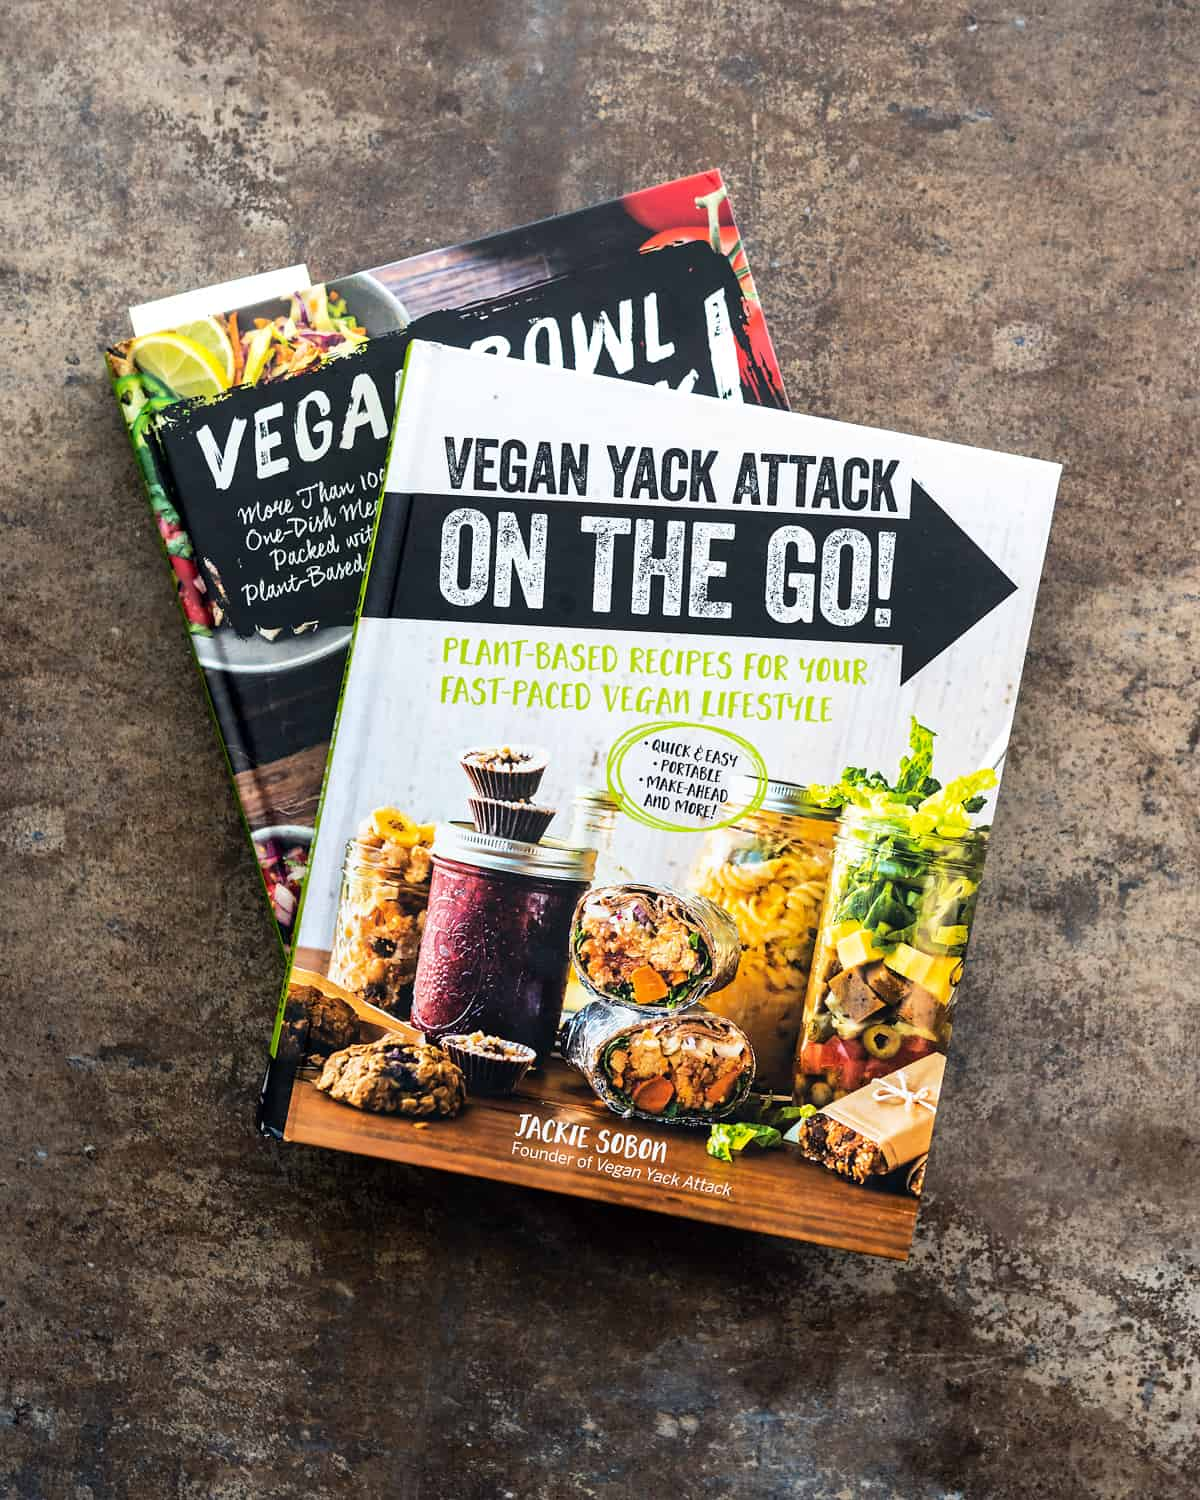 Vegan Yack Attack On the Go! and Vegan Bowl Attack! Cookbooks by Jackie Sobon